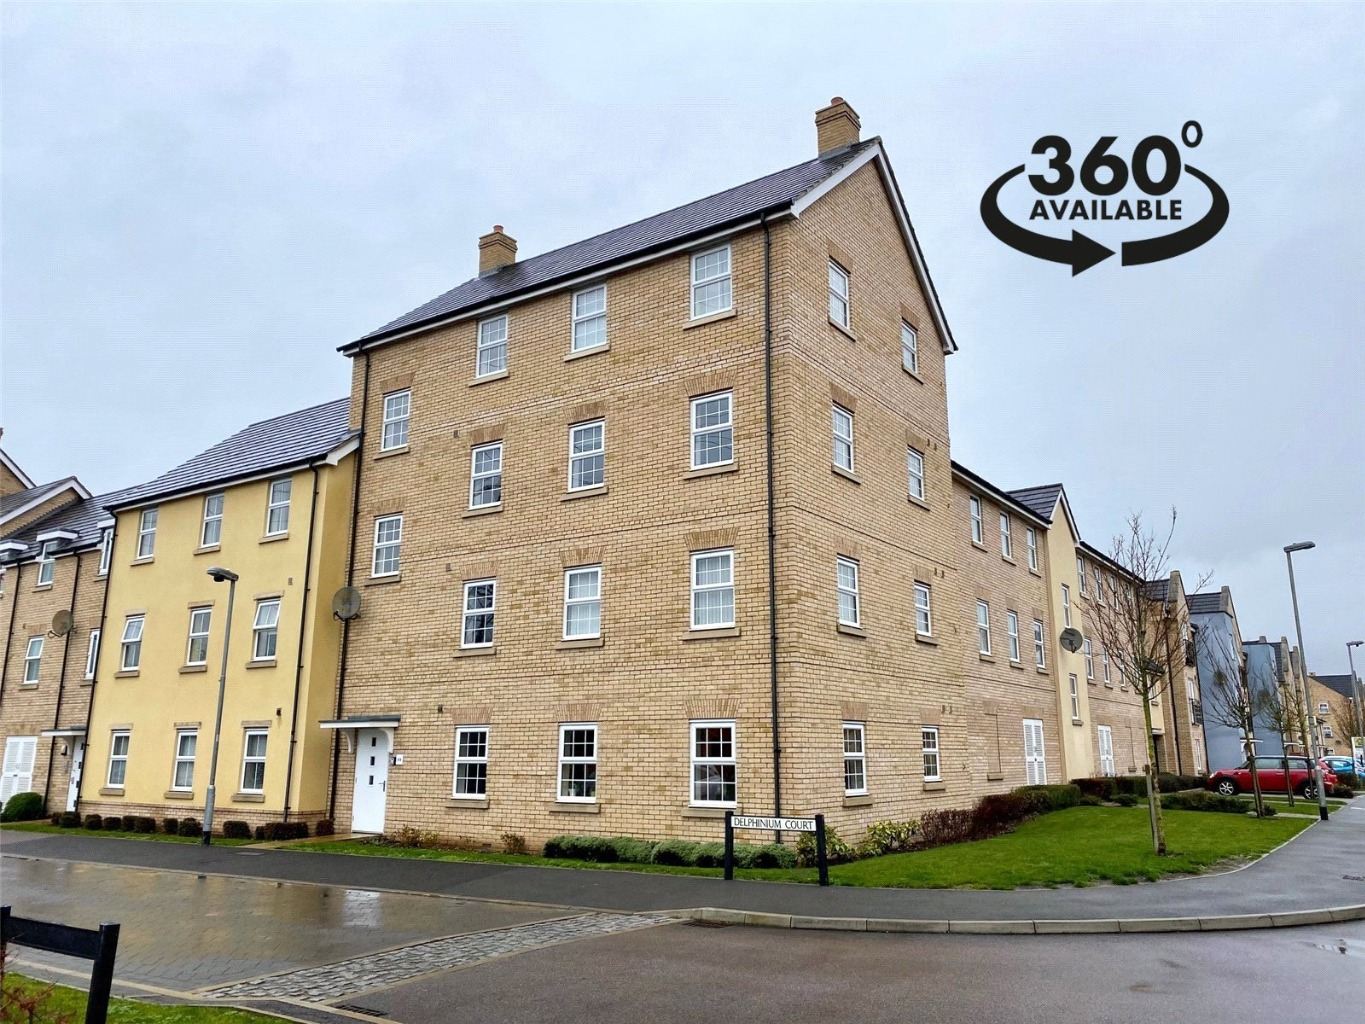 2 bed apartment for sale in Delphinium Court, St. Neots - Property Image 1